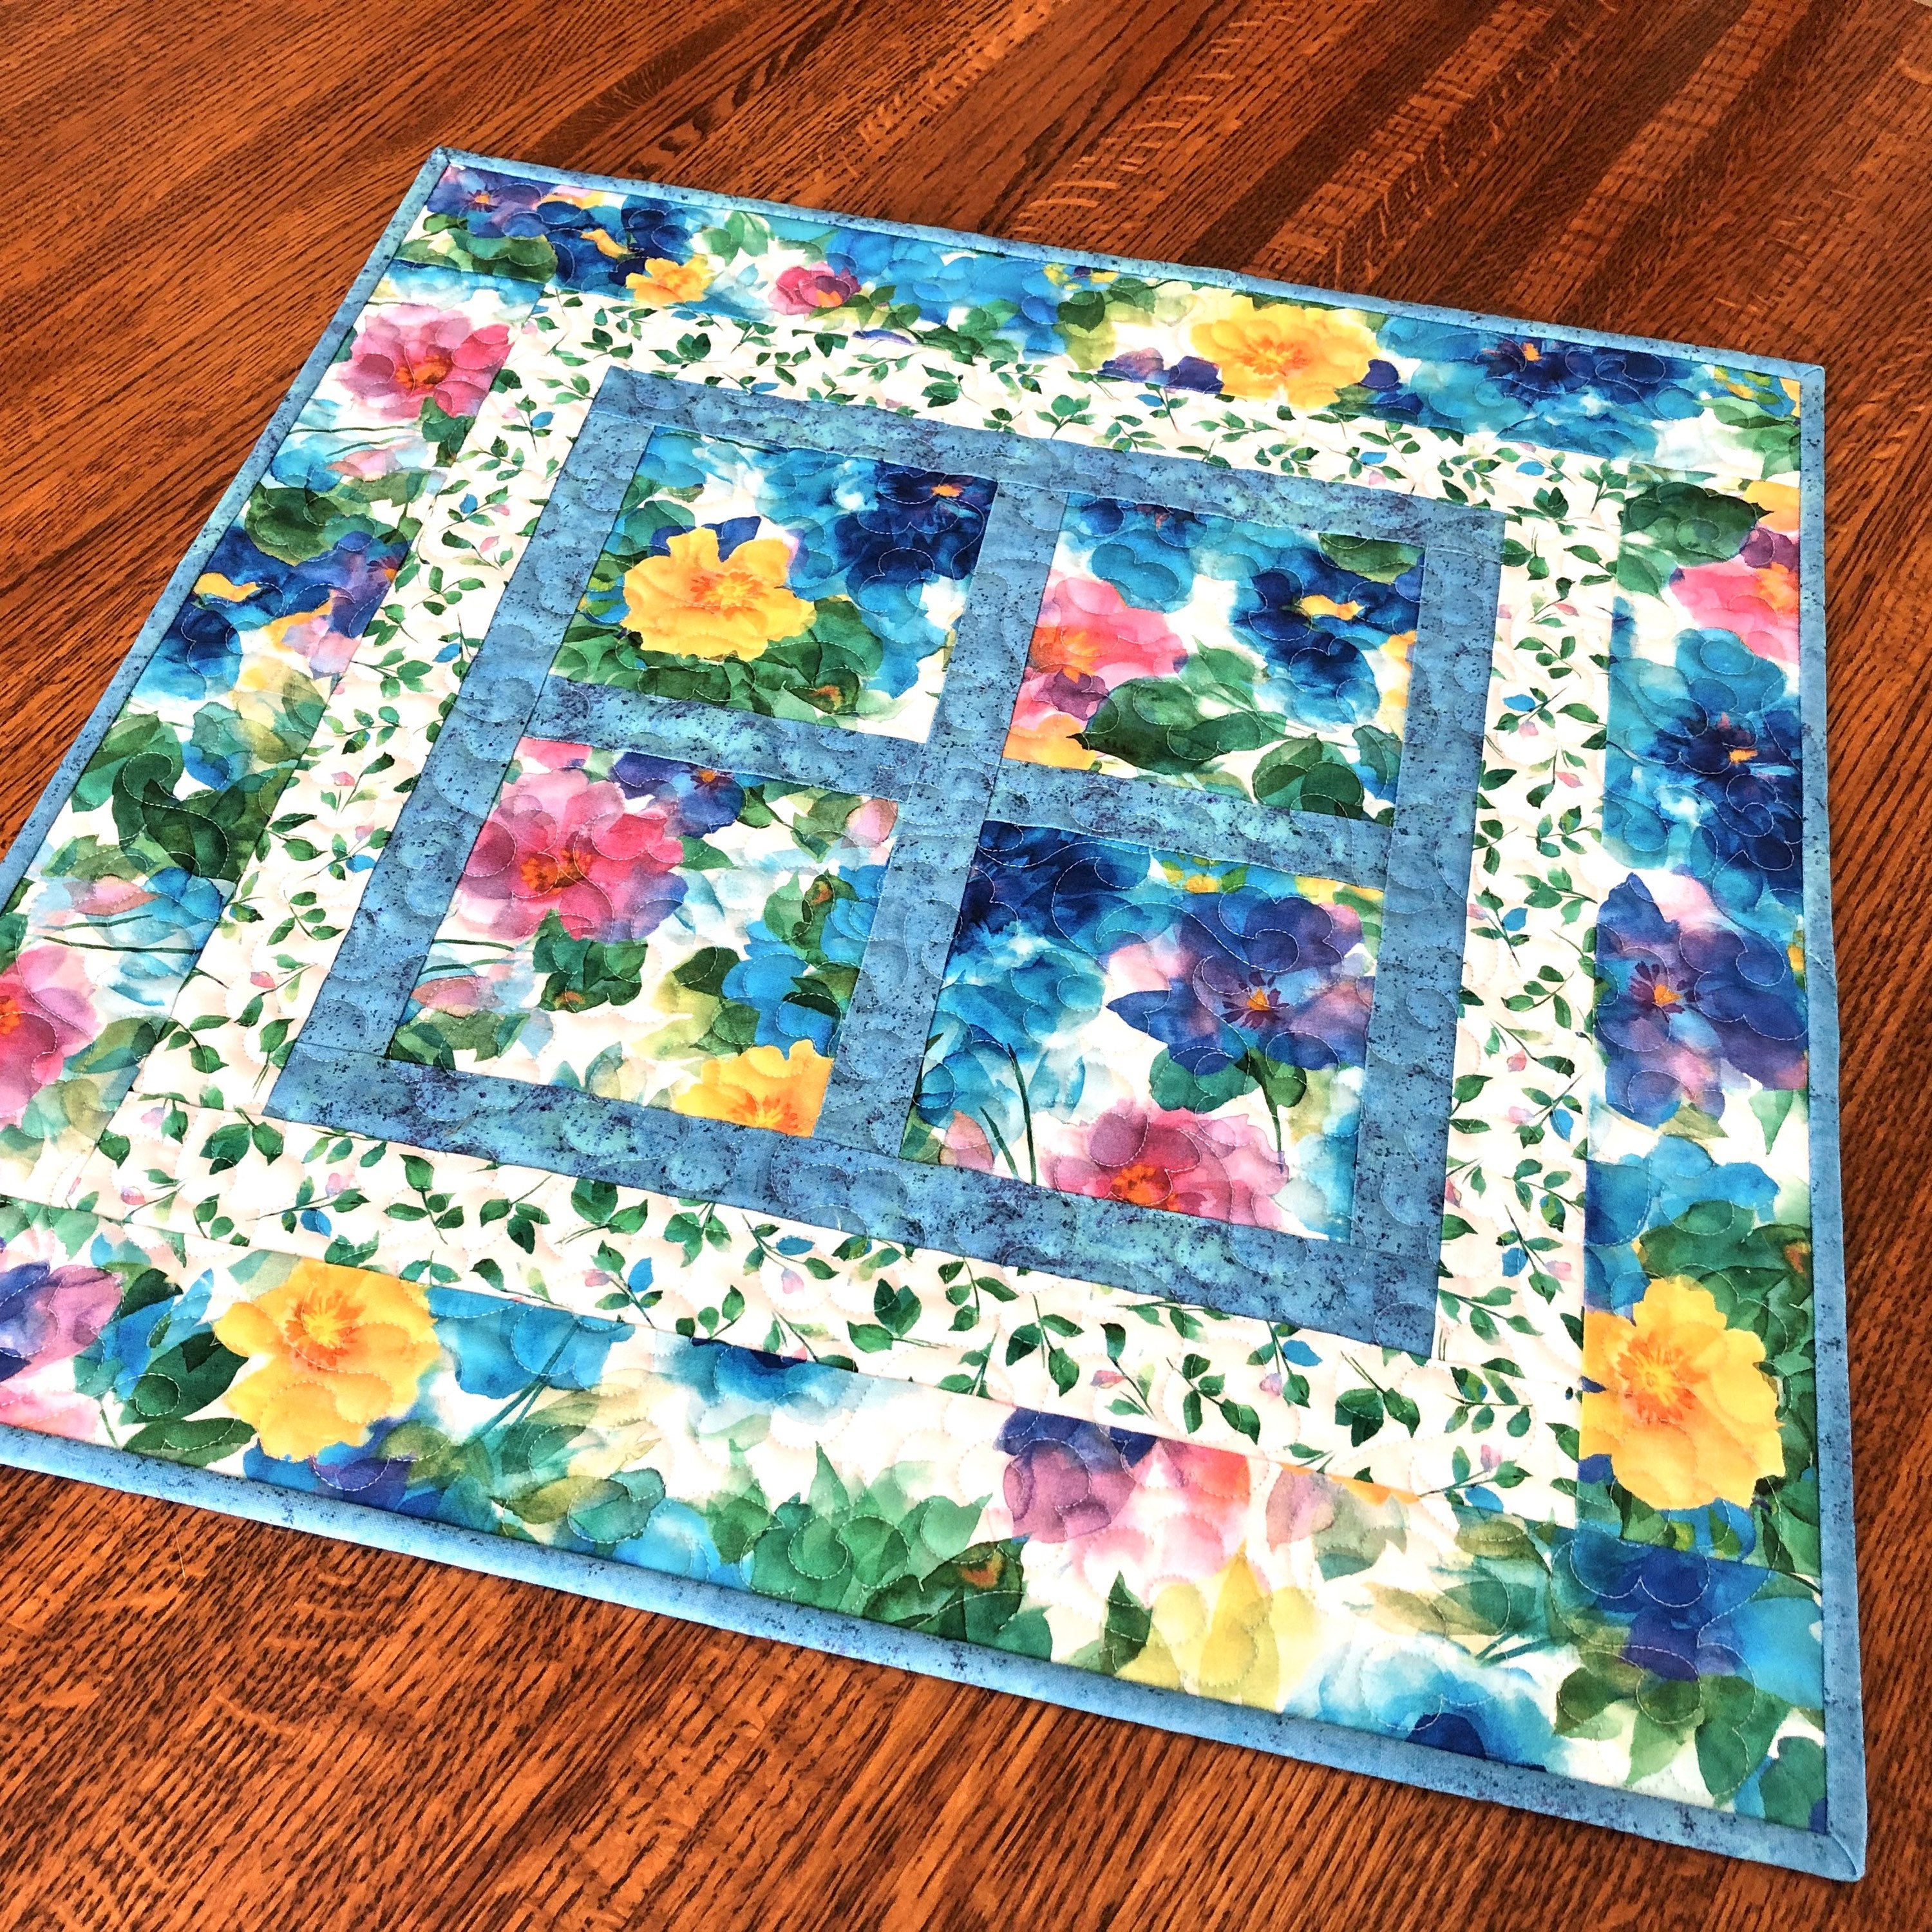 Square mini floral table runner